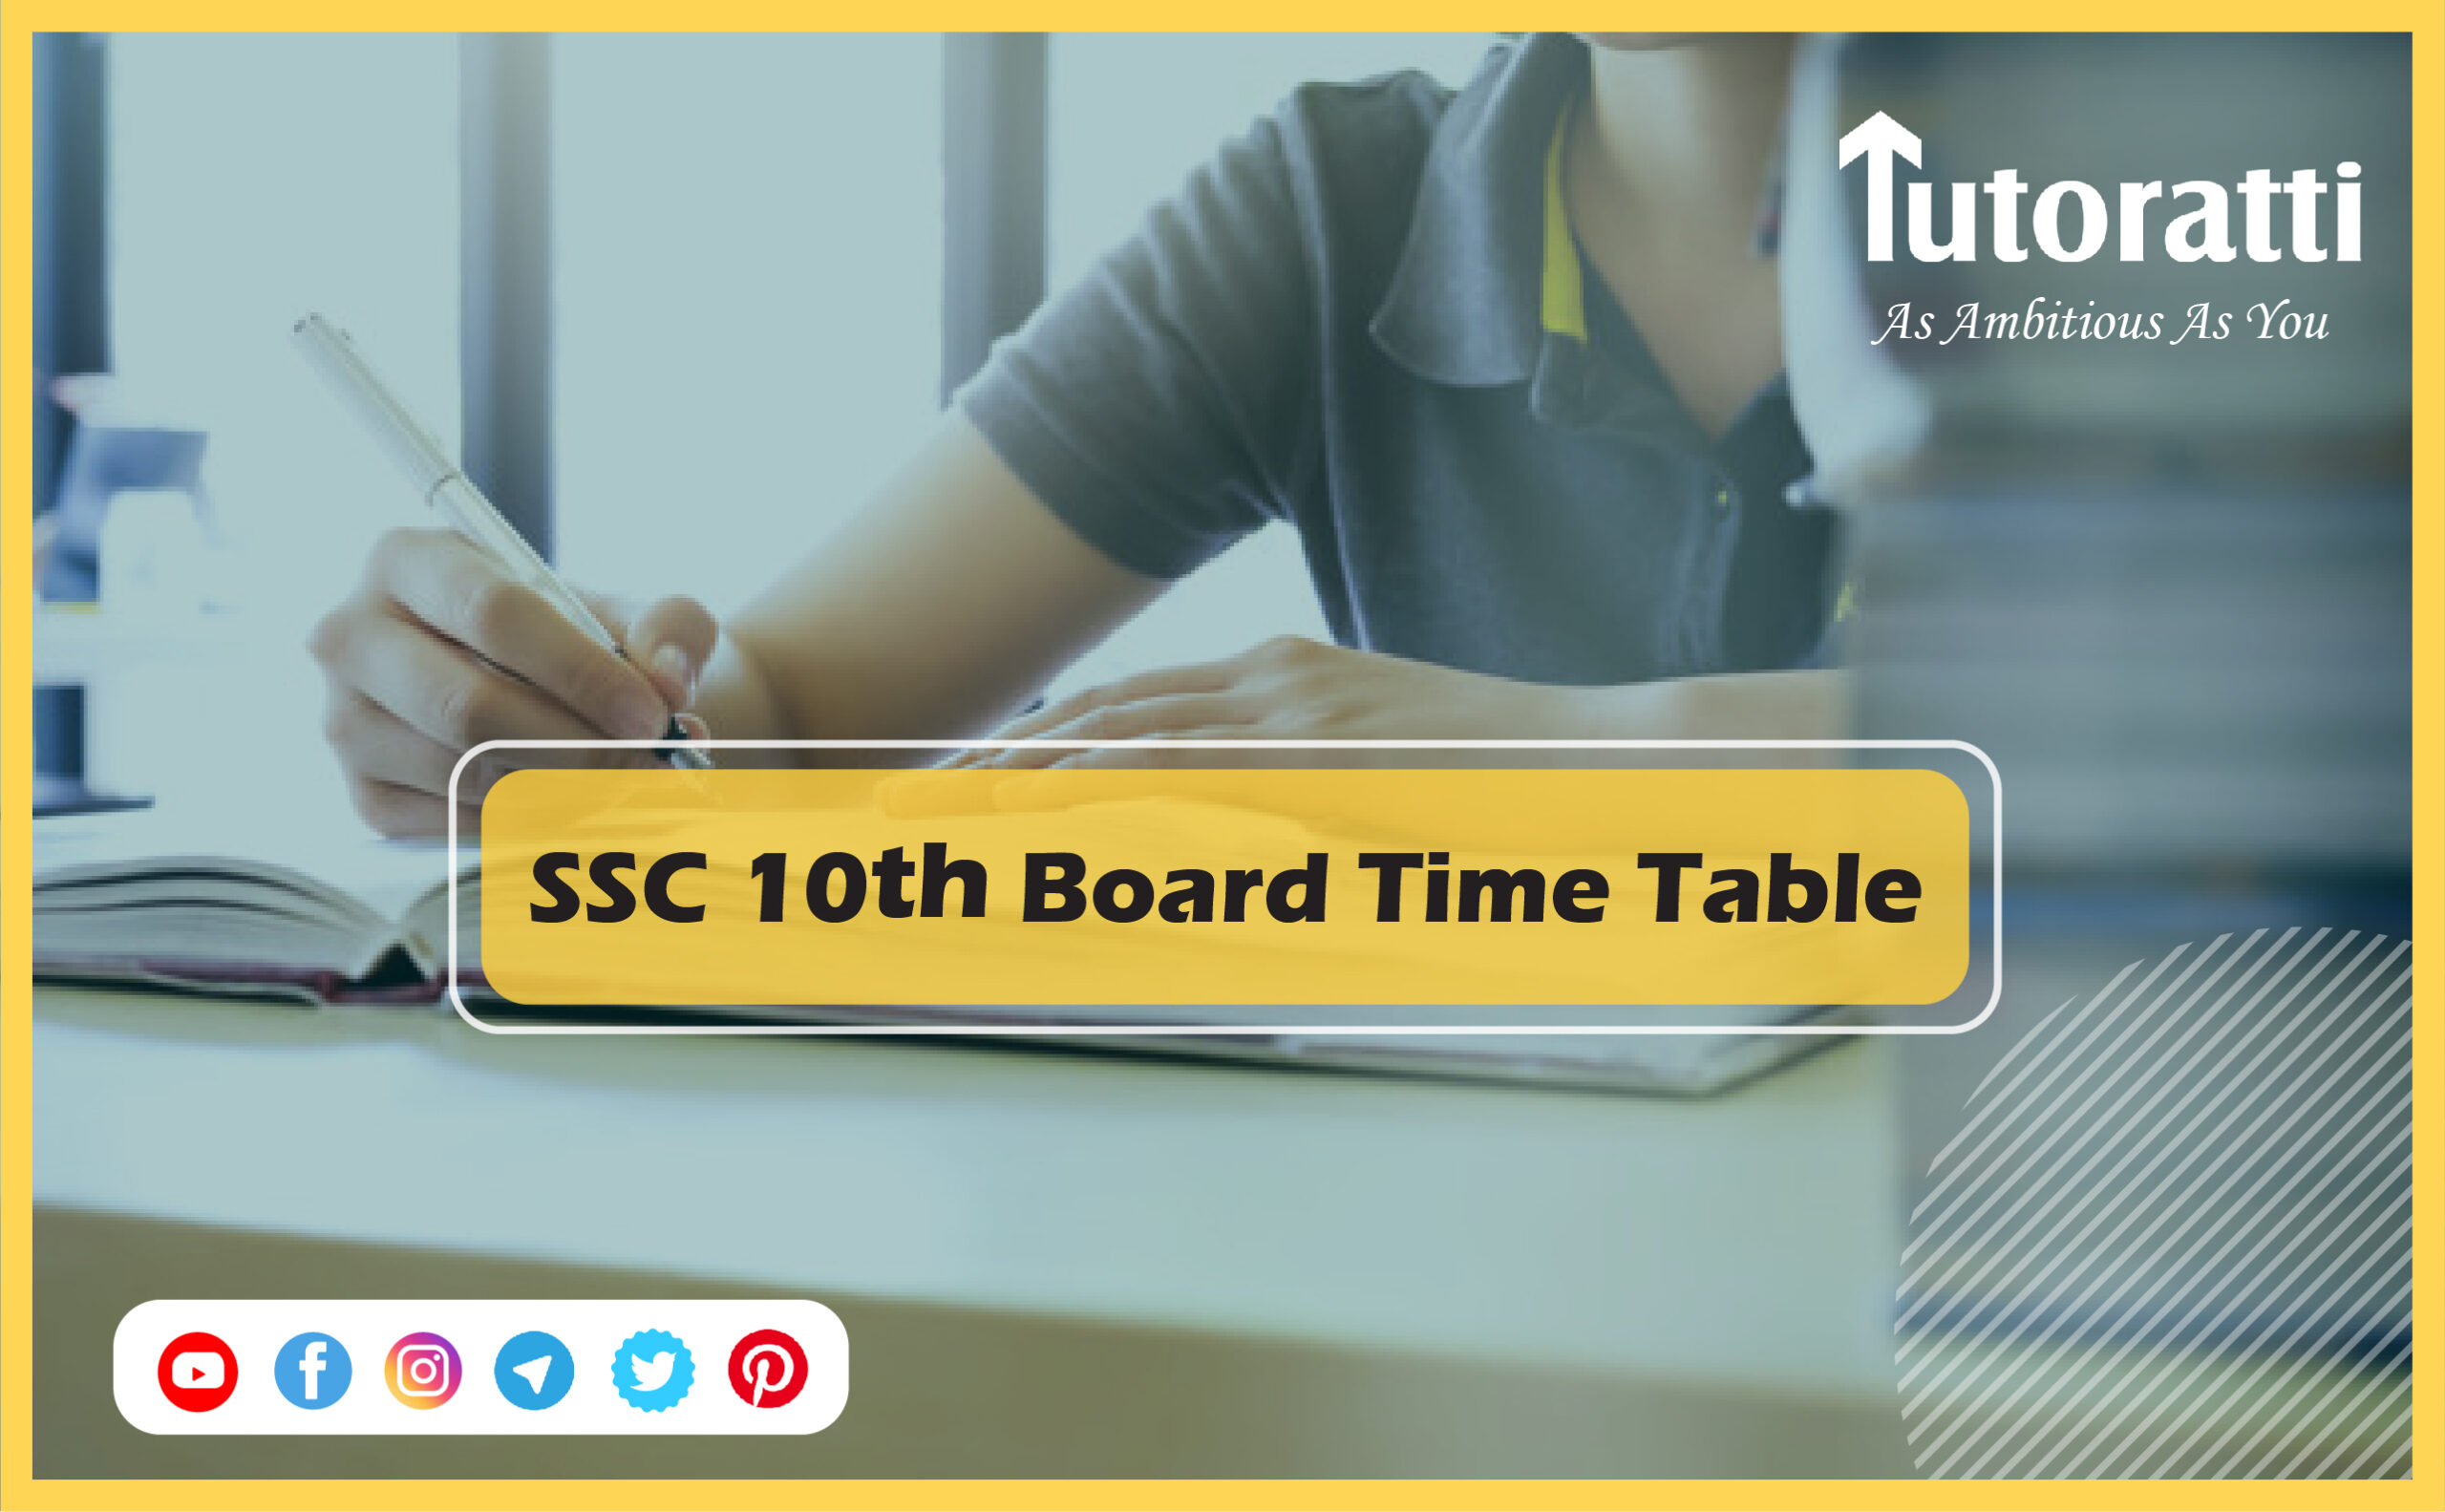 SSC 10th Board Time Table